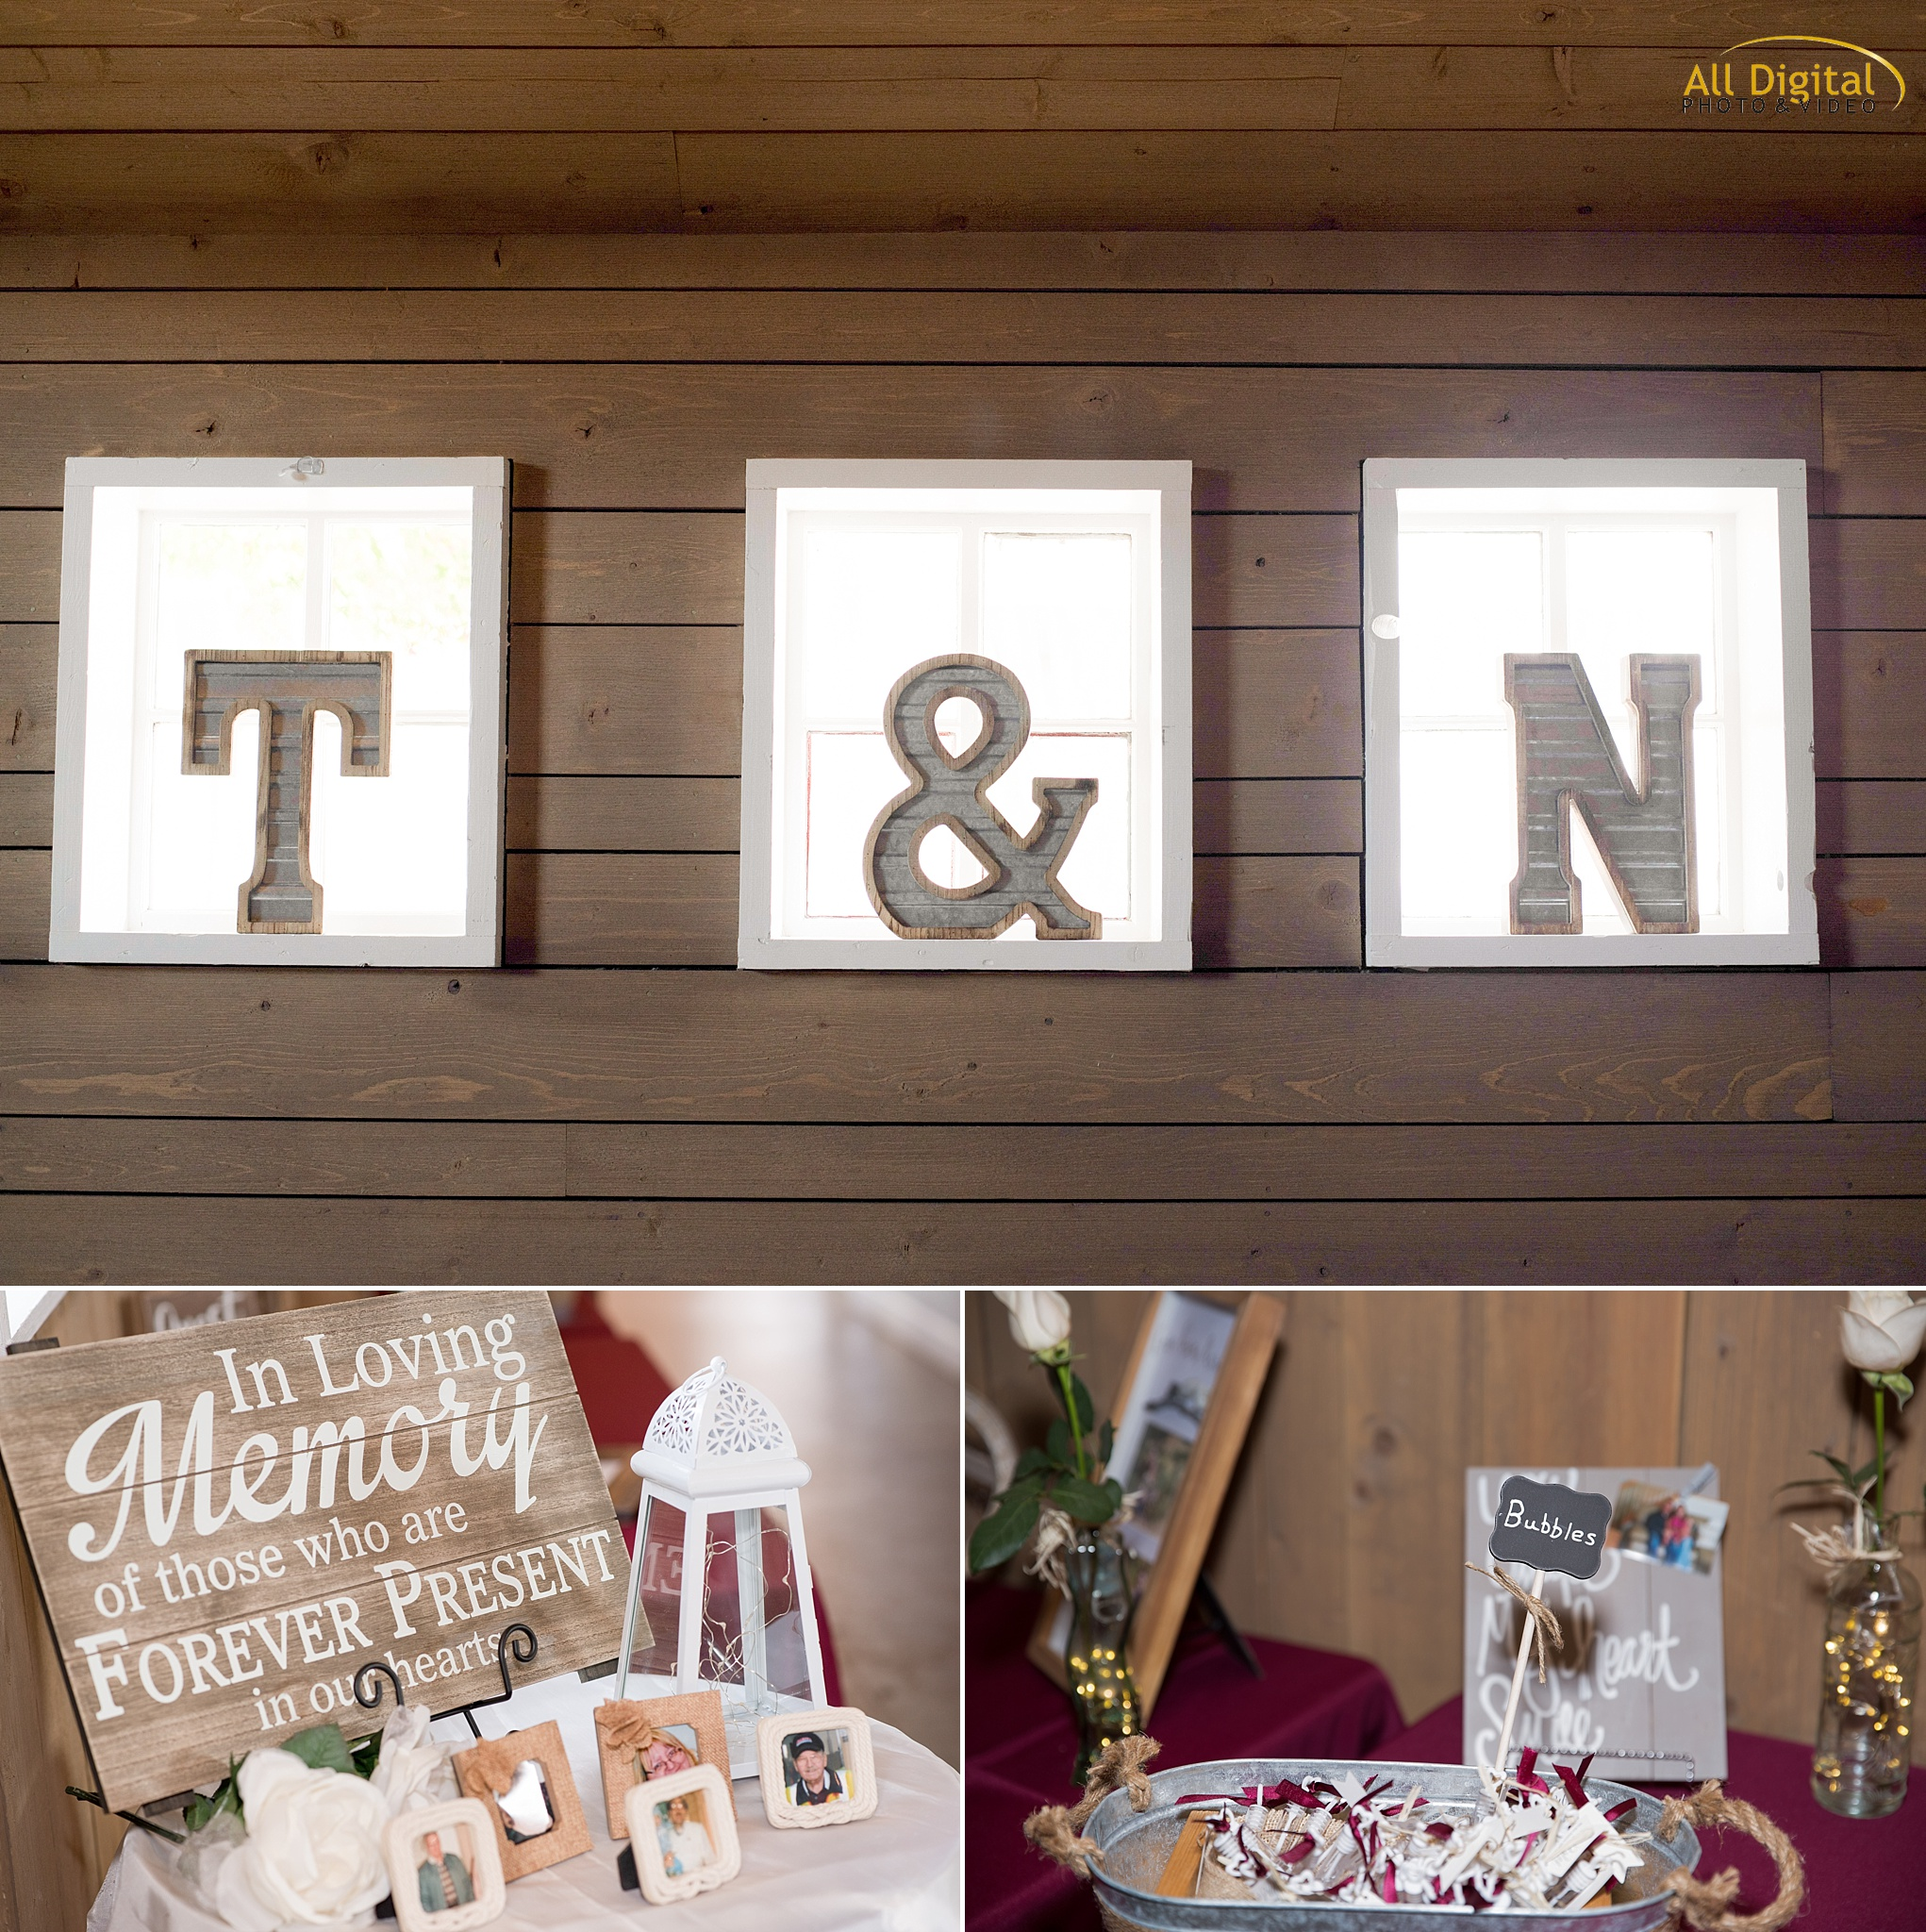 Tina & Nathan's Reception Details at the Barn at Raccoon Creek